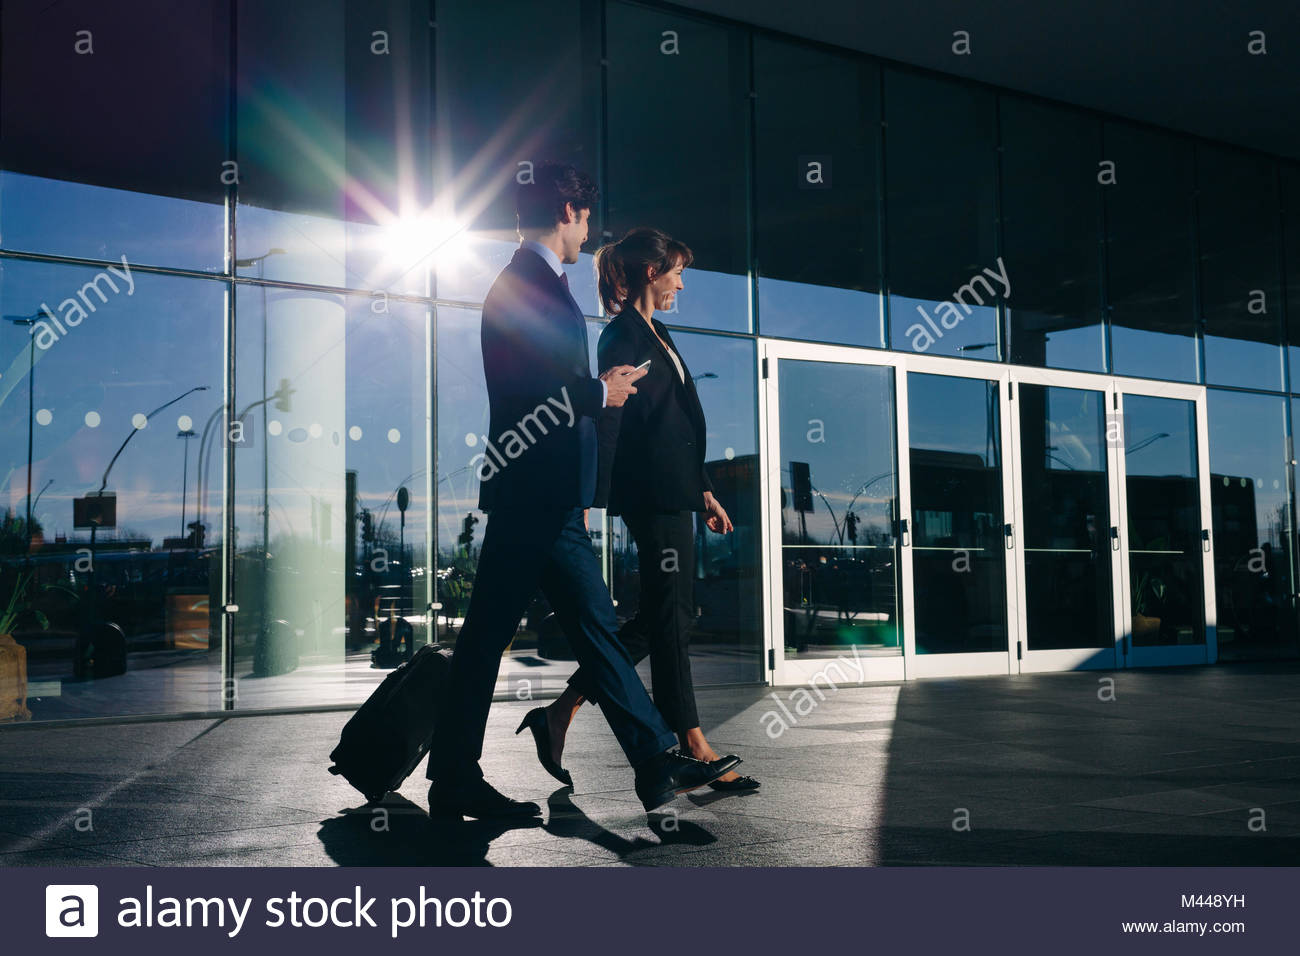 Businessman and businesswoman with wheeled luggage passing glass building, Malpensa, Milan - Stock Image